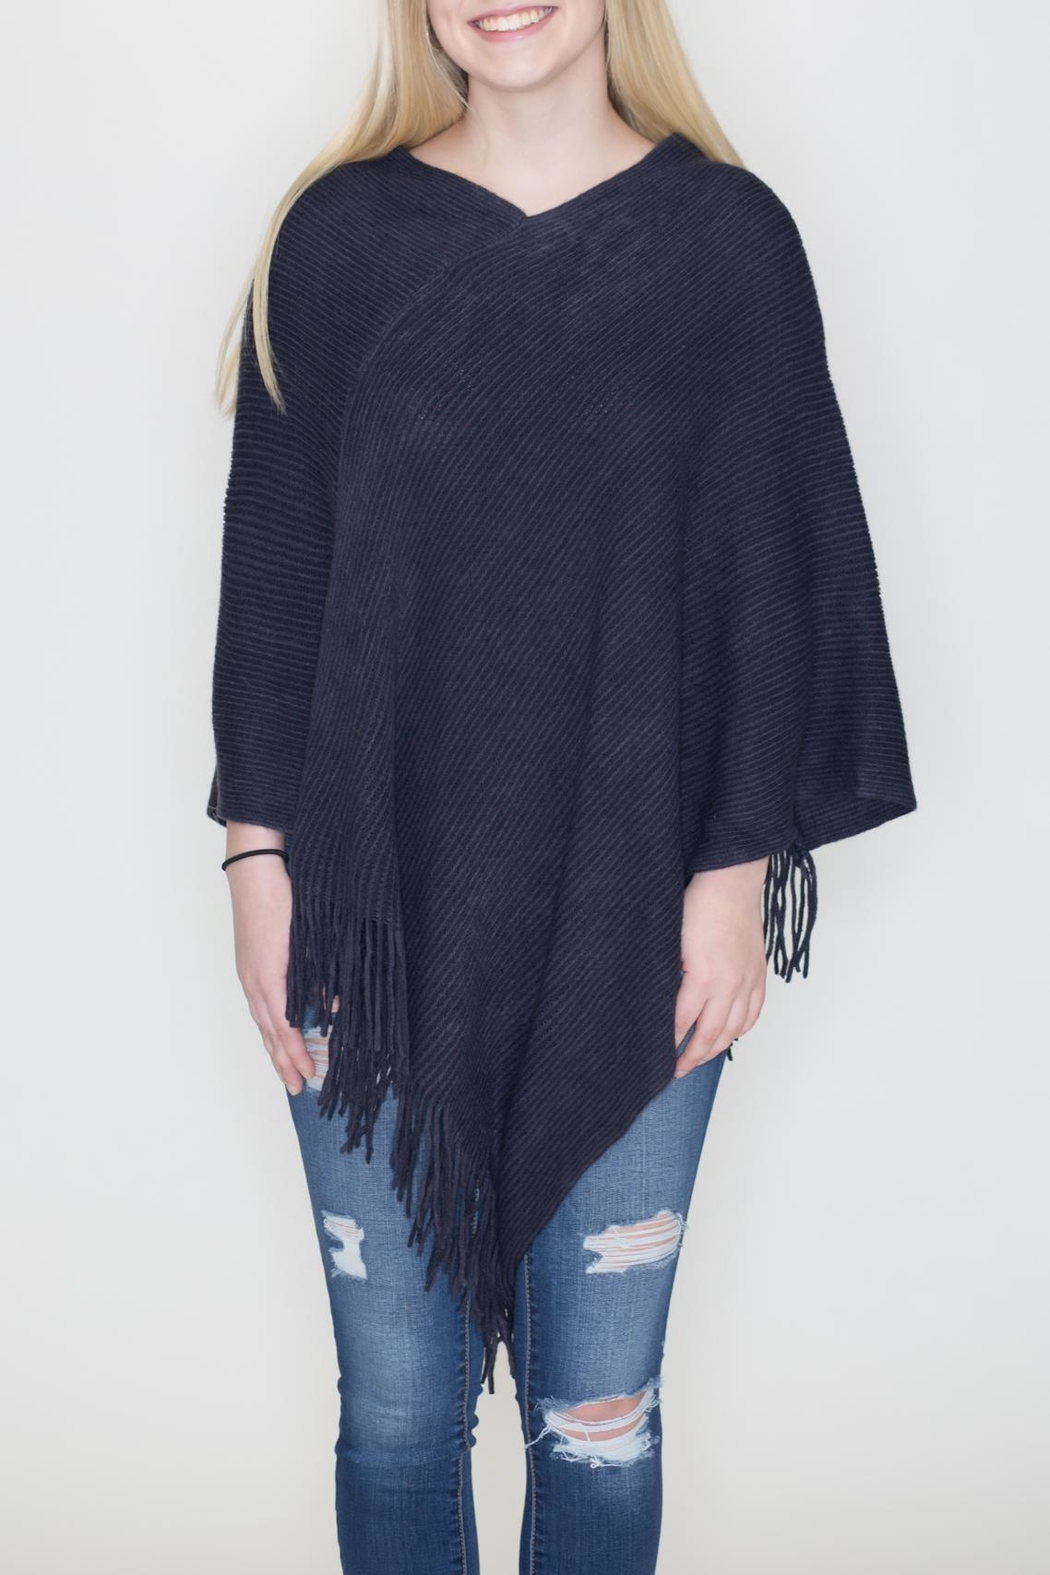 6adfcbbc800 Ruggine Striped Knit Poncho from Philadelphia by May 23 — Shoptiques